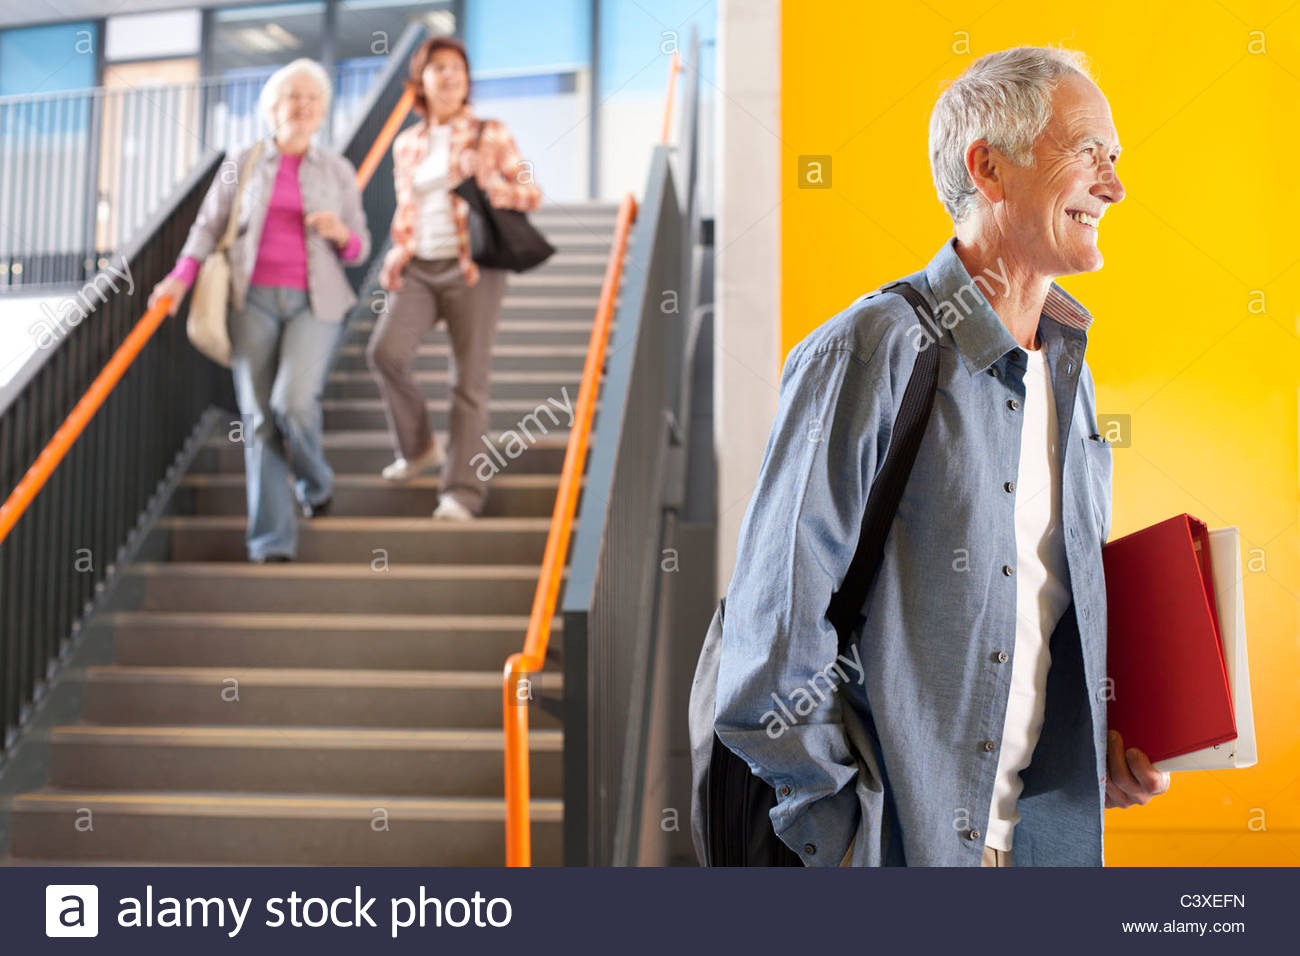 Adult students in college arriving for evening classes - Stock Image